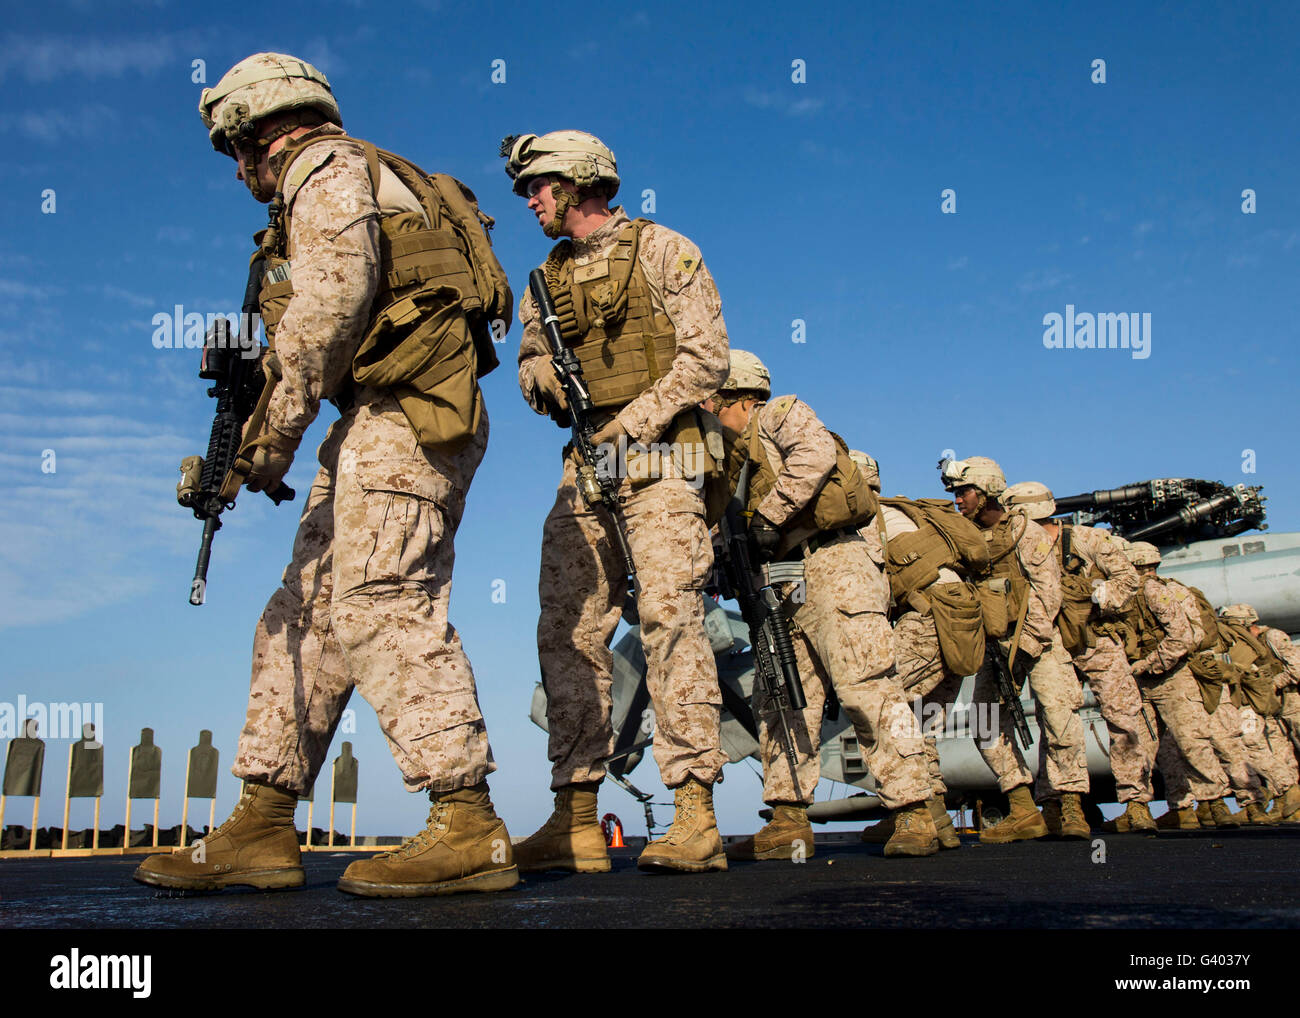 U.S. Marines pivot into position during a live-fire exercise. - Stock Image